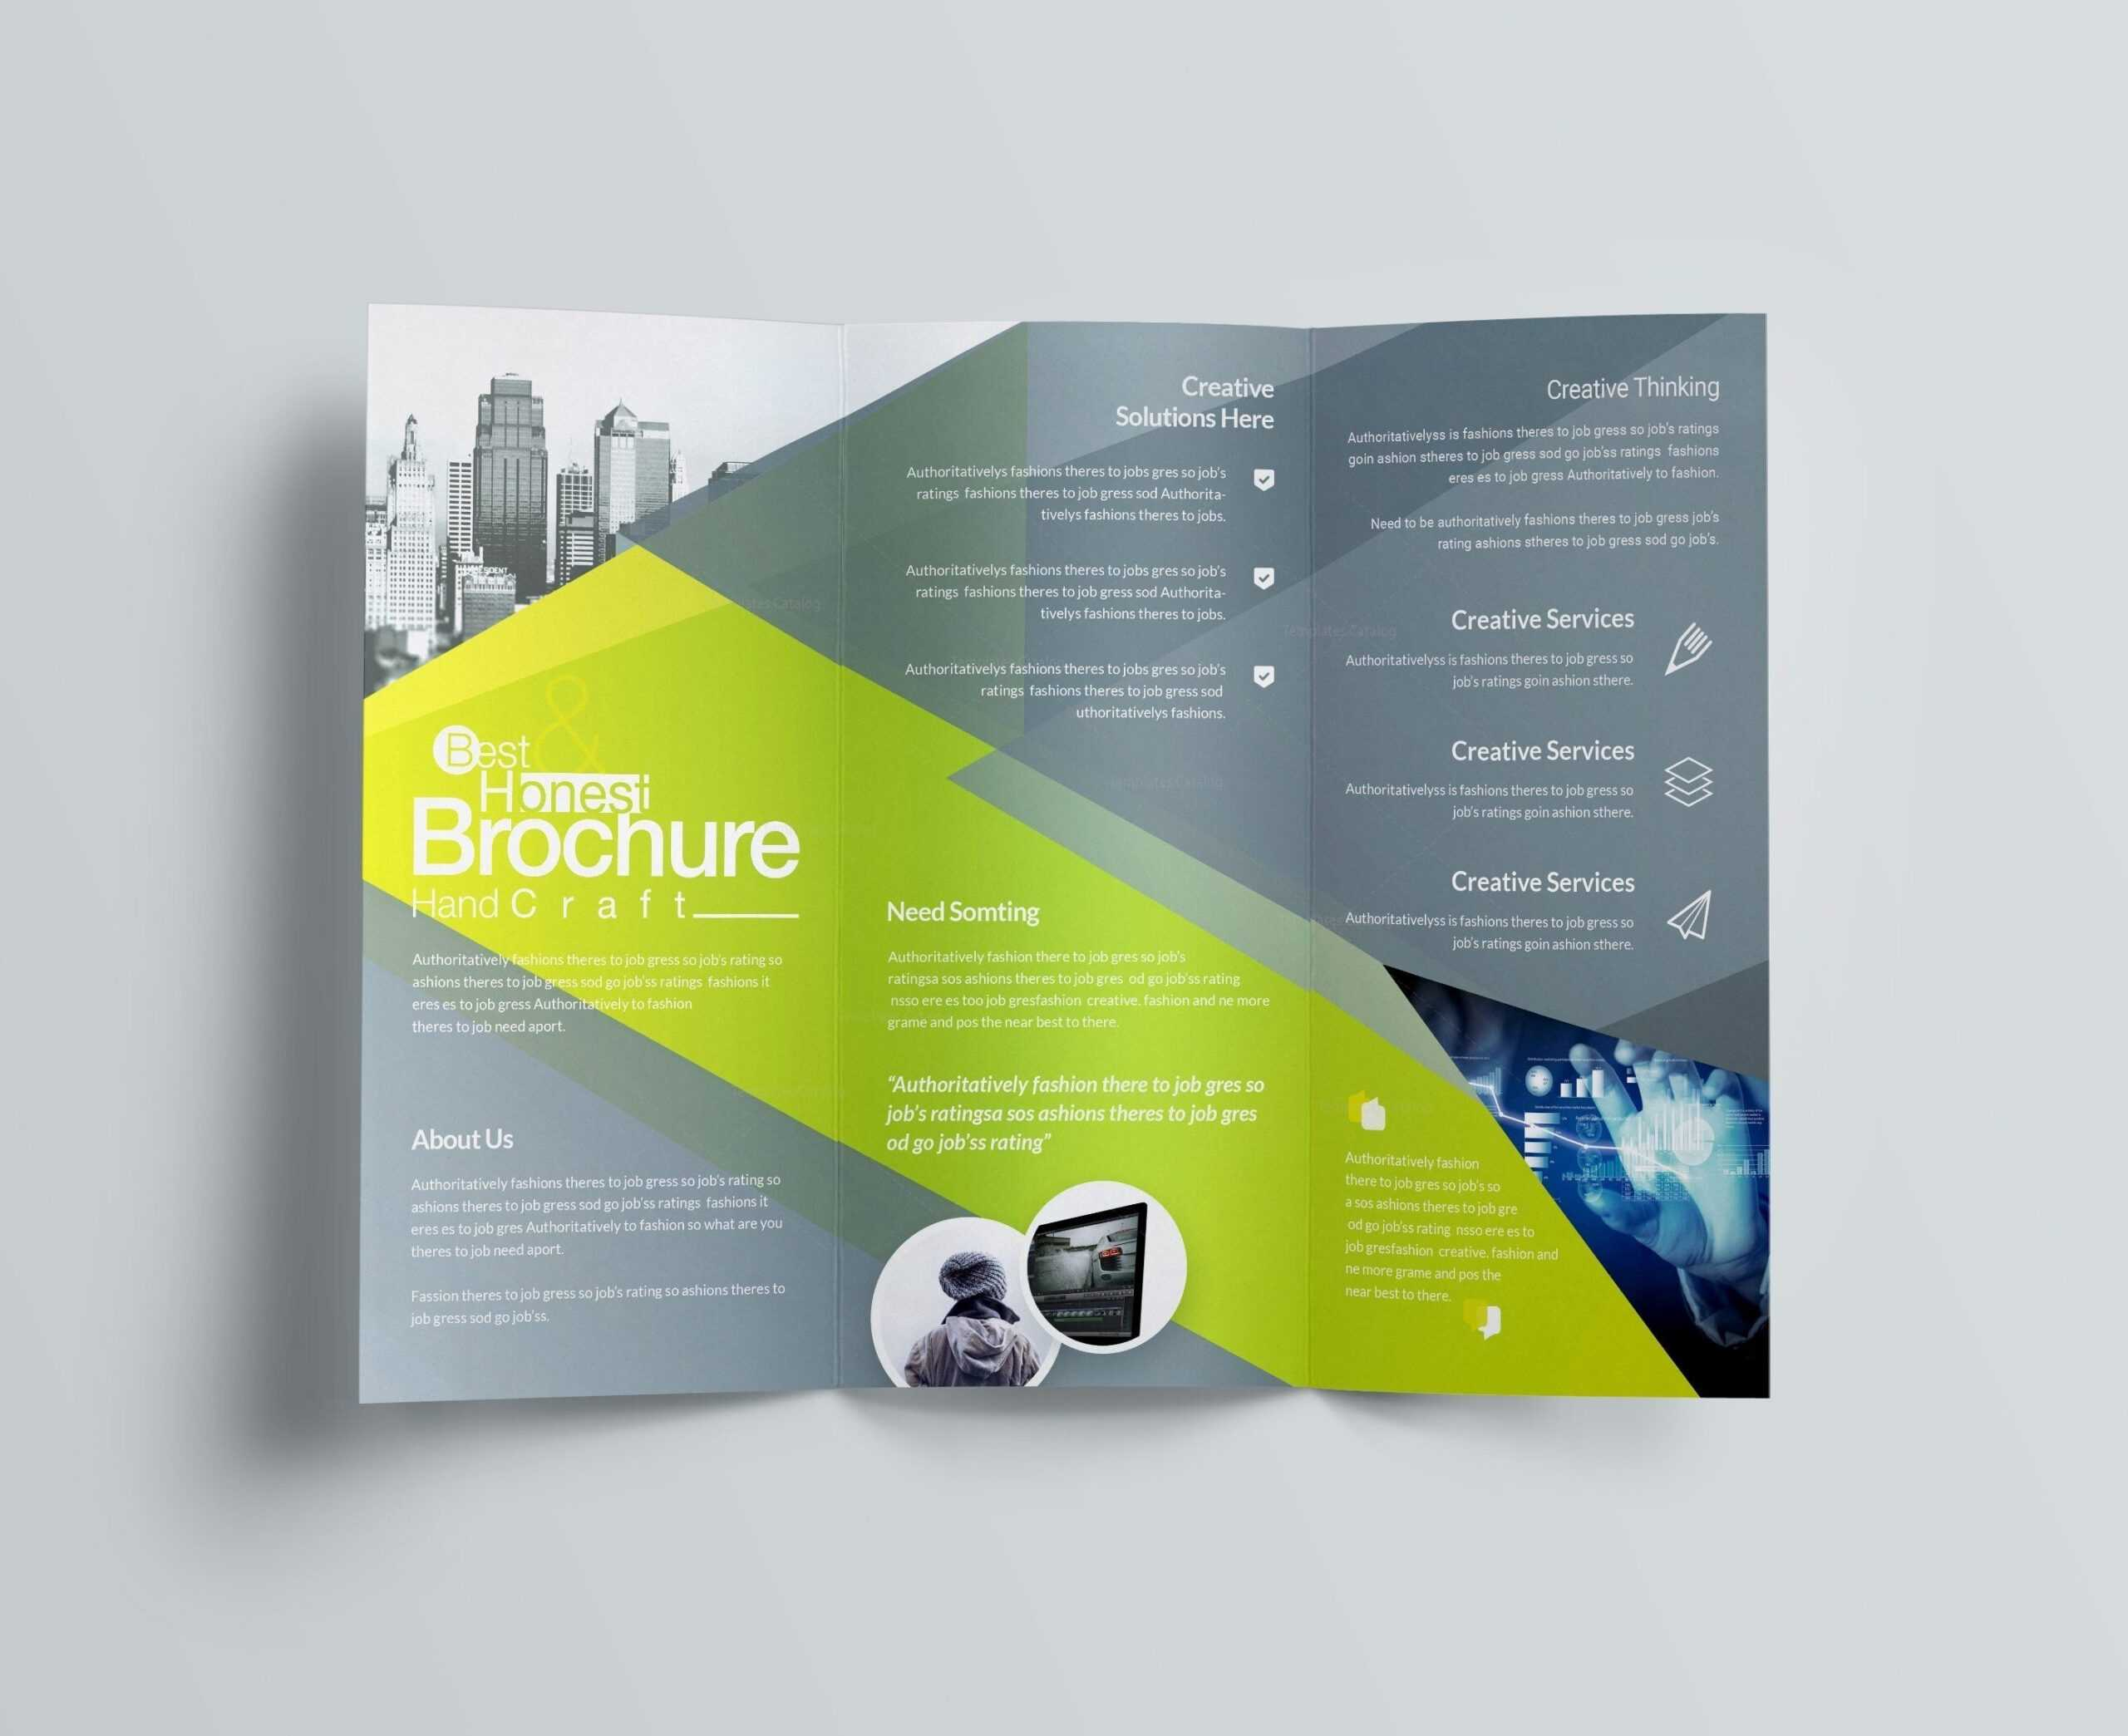 013 Free Brochure Templates For Mac Apartment Flyers With Regard To Mac Brochure Templates